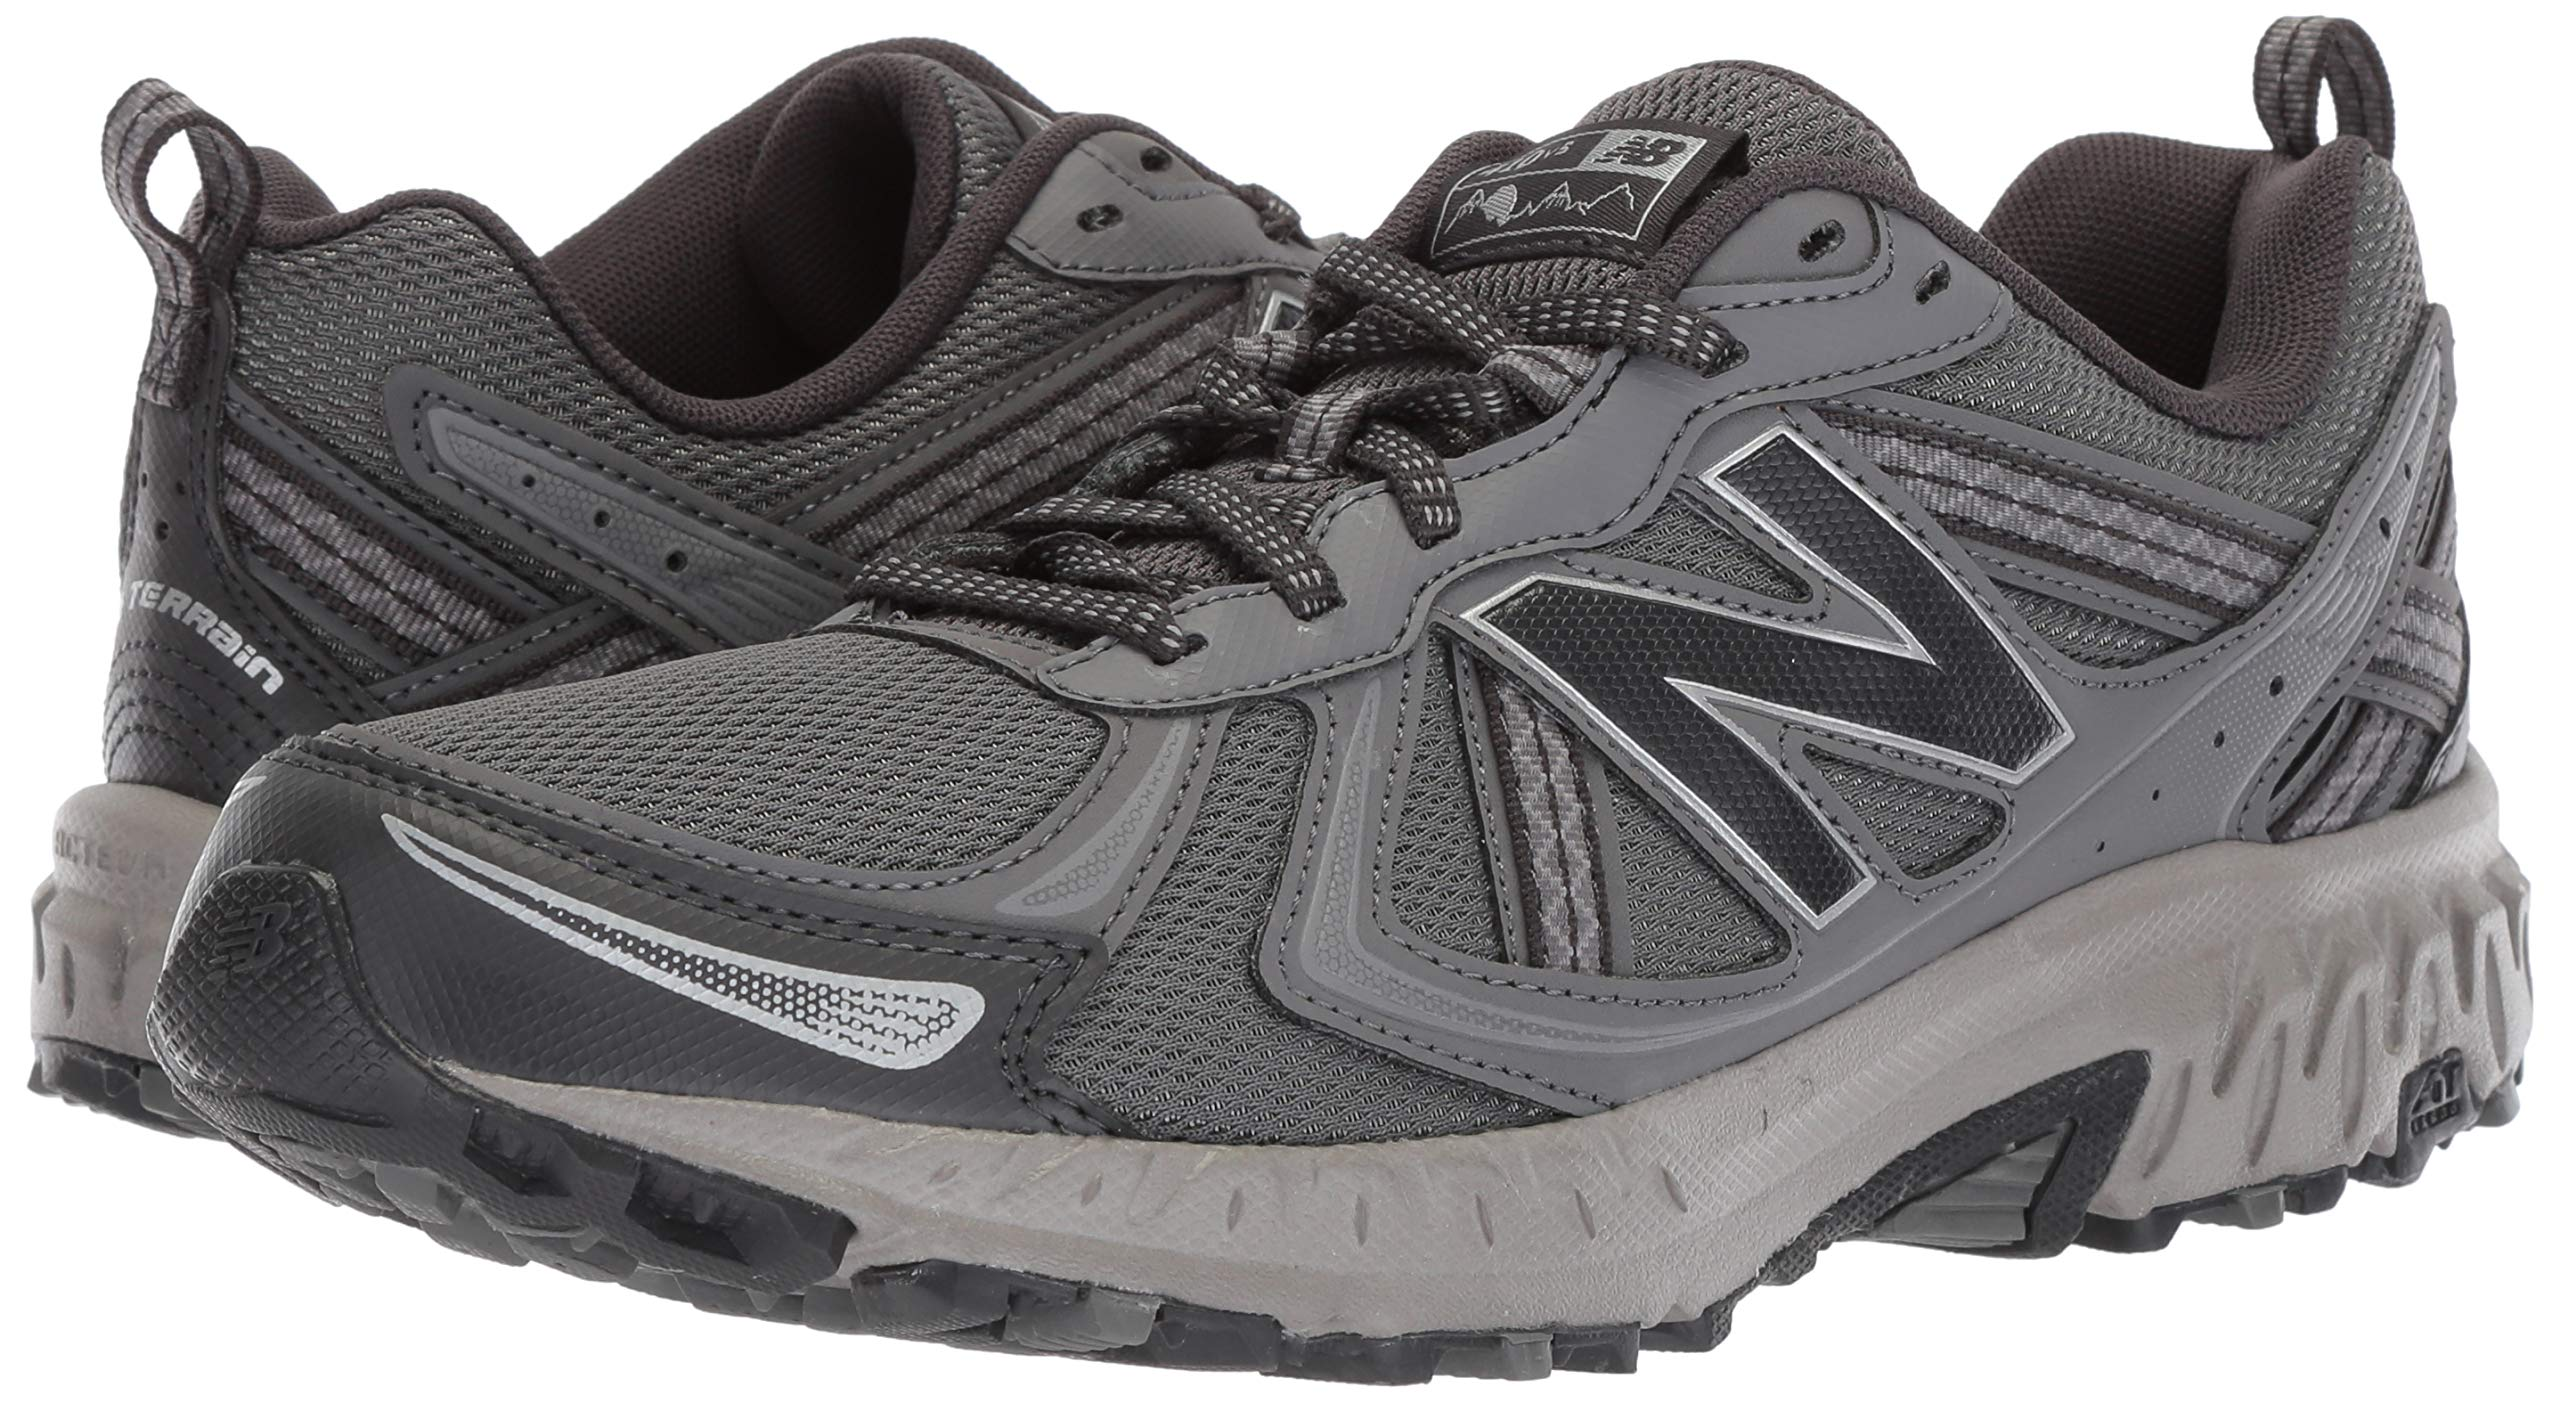 New Balance Men's 410v5 Cushioning Trail Running Shoe, Castlerock/Phantom, 7 D US by New Balance (Image #6)